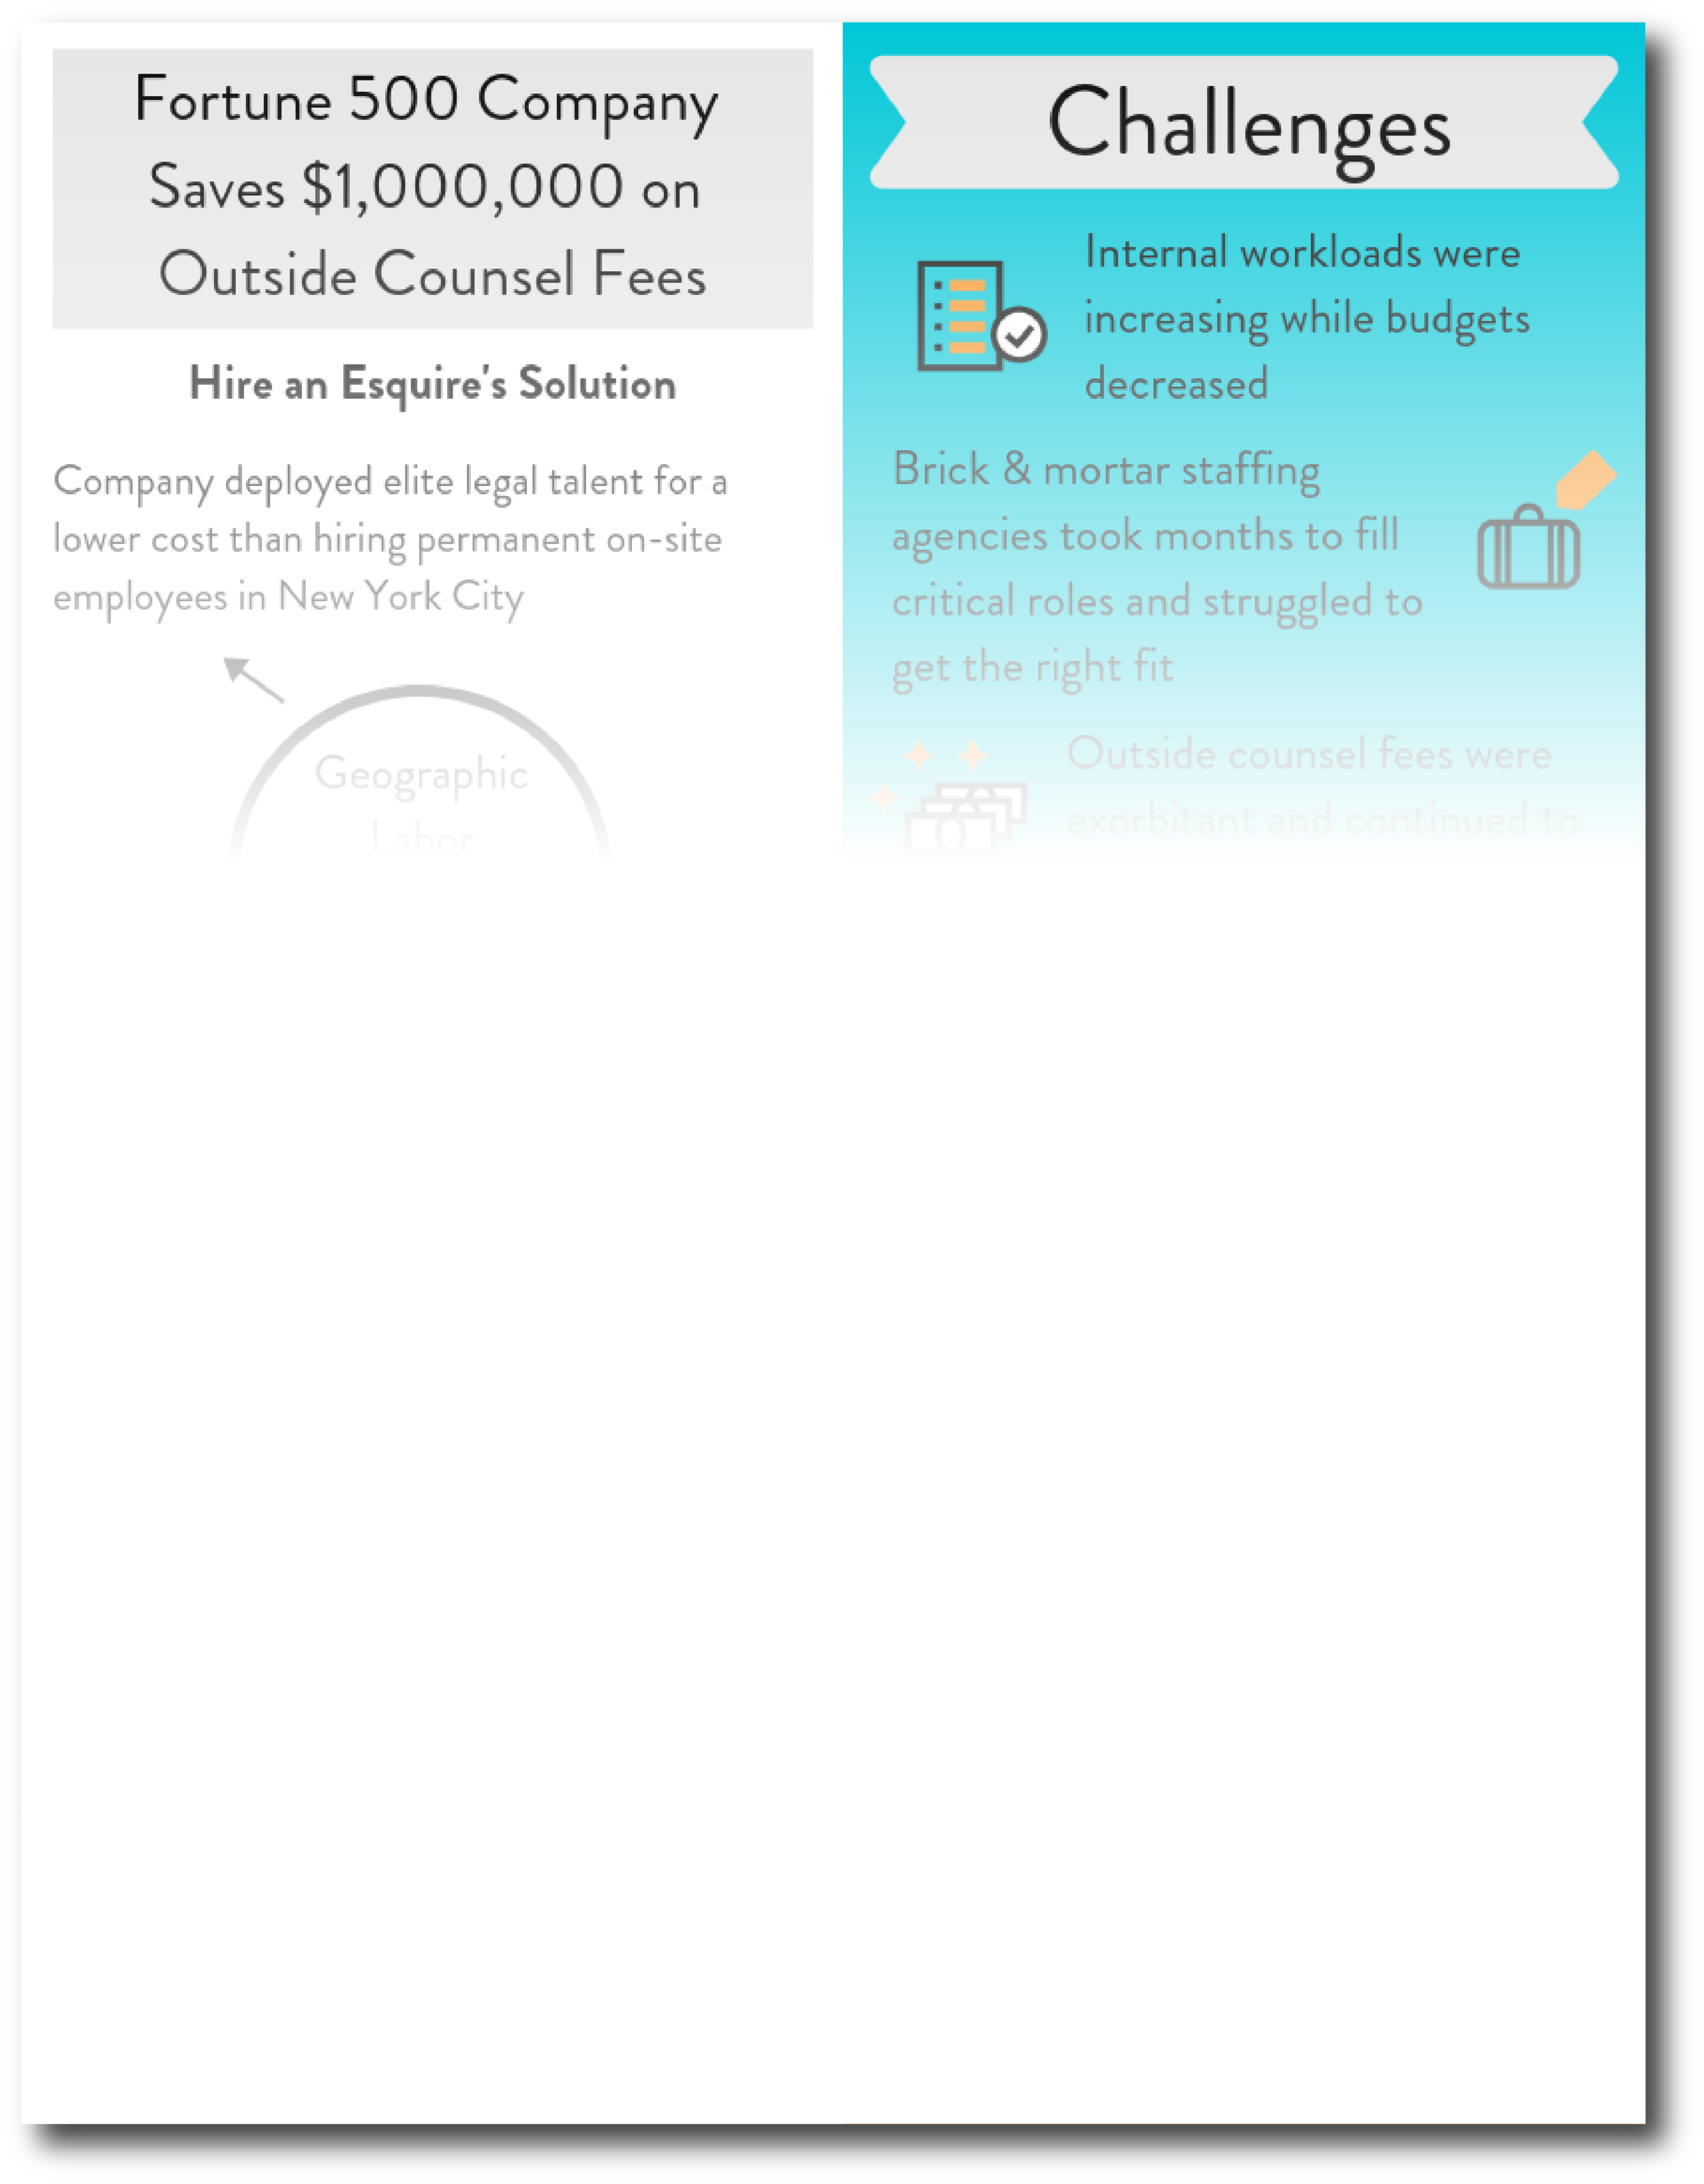 Fortune 500 Company Saves $1,000,000 on Outside Counsel Fees - • Review the challenges of workload increases coupled with budget decreases• Benefits of the Hire an Esquire solution to save money on Outside Counsel Fees• See the results of HaE's algorithm-assisted staffing system